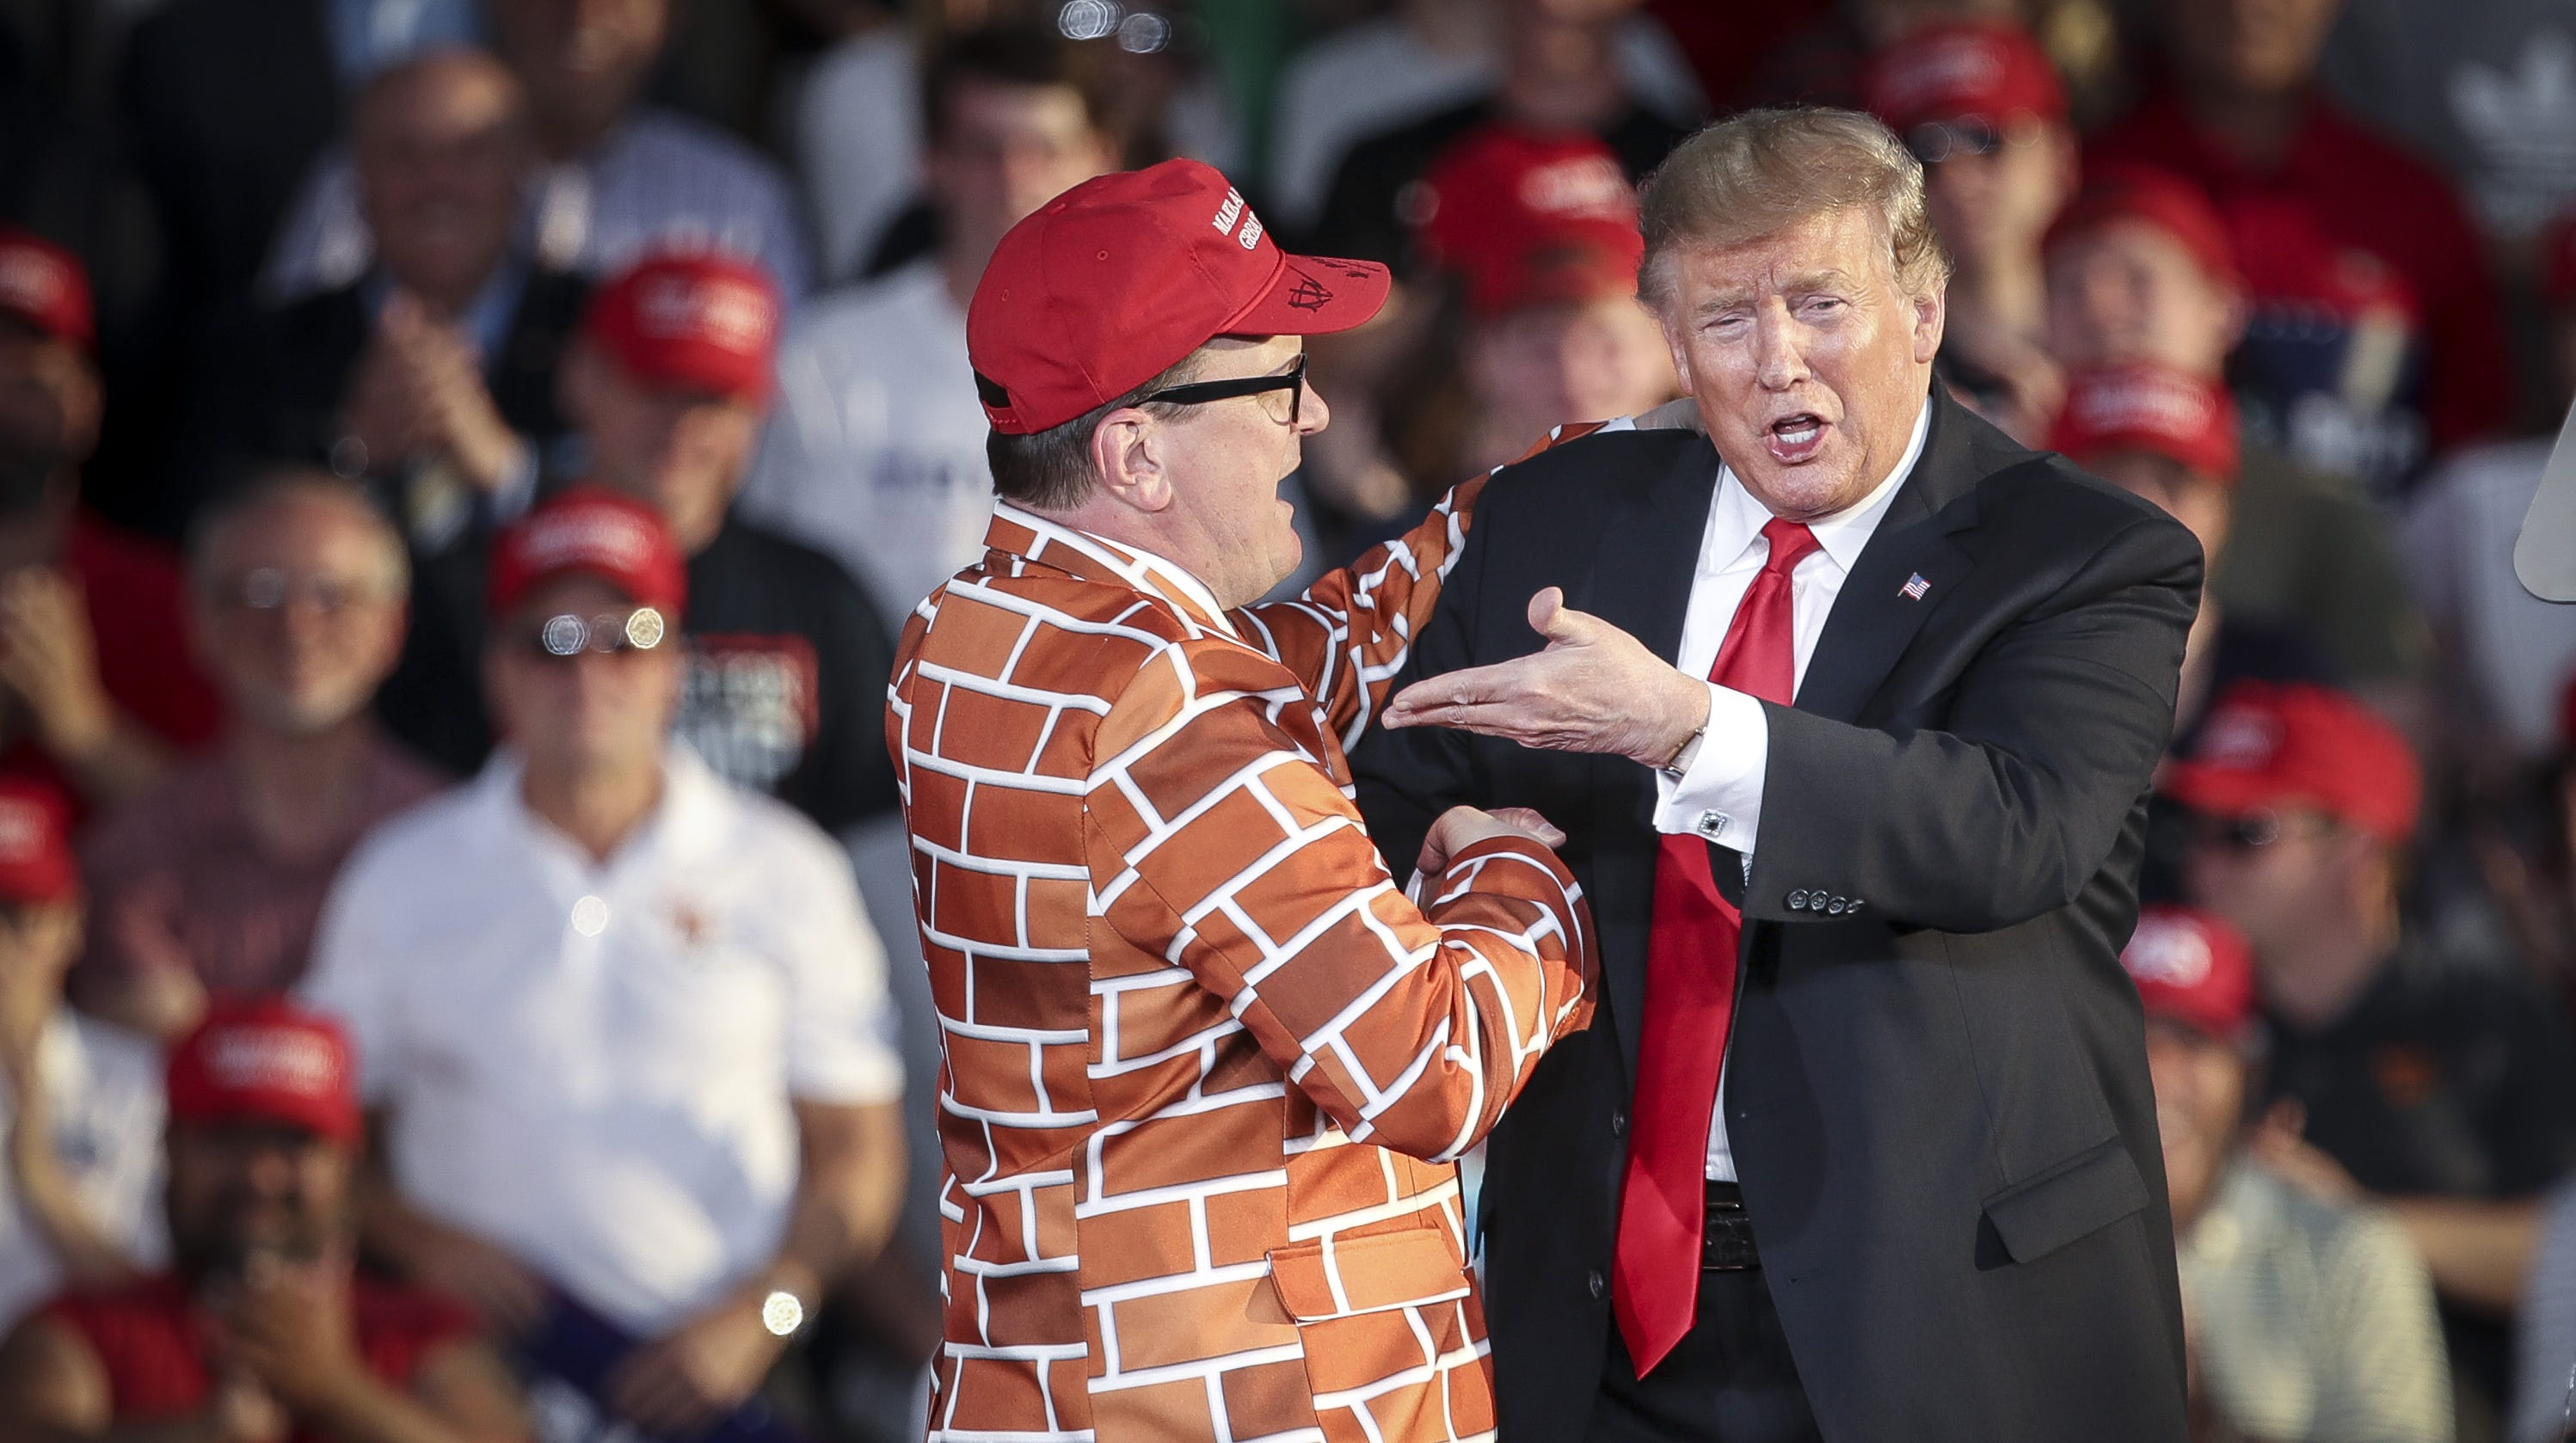 MONTOURSVILLE, PA: President Donald Trump calls up Blake Marnell, wearing a jacket with bricks representing a border wall, to the stage during a 'Make America Great Again' campaign rally at Williamsport Regional Airport on May 20 in Montoursville, Pennsylvania. Trump is making a trip to the swing state to drum up Republican support on the eve of a special election in Pennsylvania's 12th congressional district, with Republican Fred Keller facing off against Democrat Marc Friedenberg. (Photo by Drew Angerer/Getty Images) ORG XMIT: 775341208 ORIG FILE ID: 1145317959